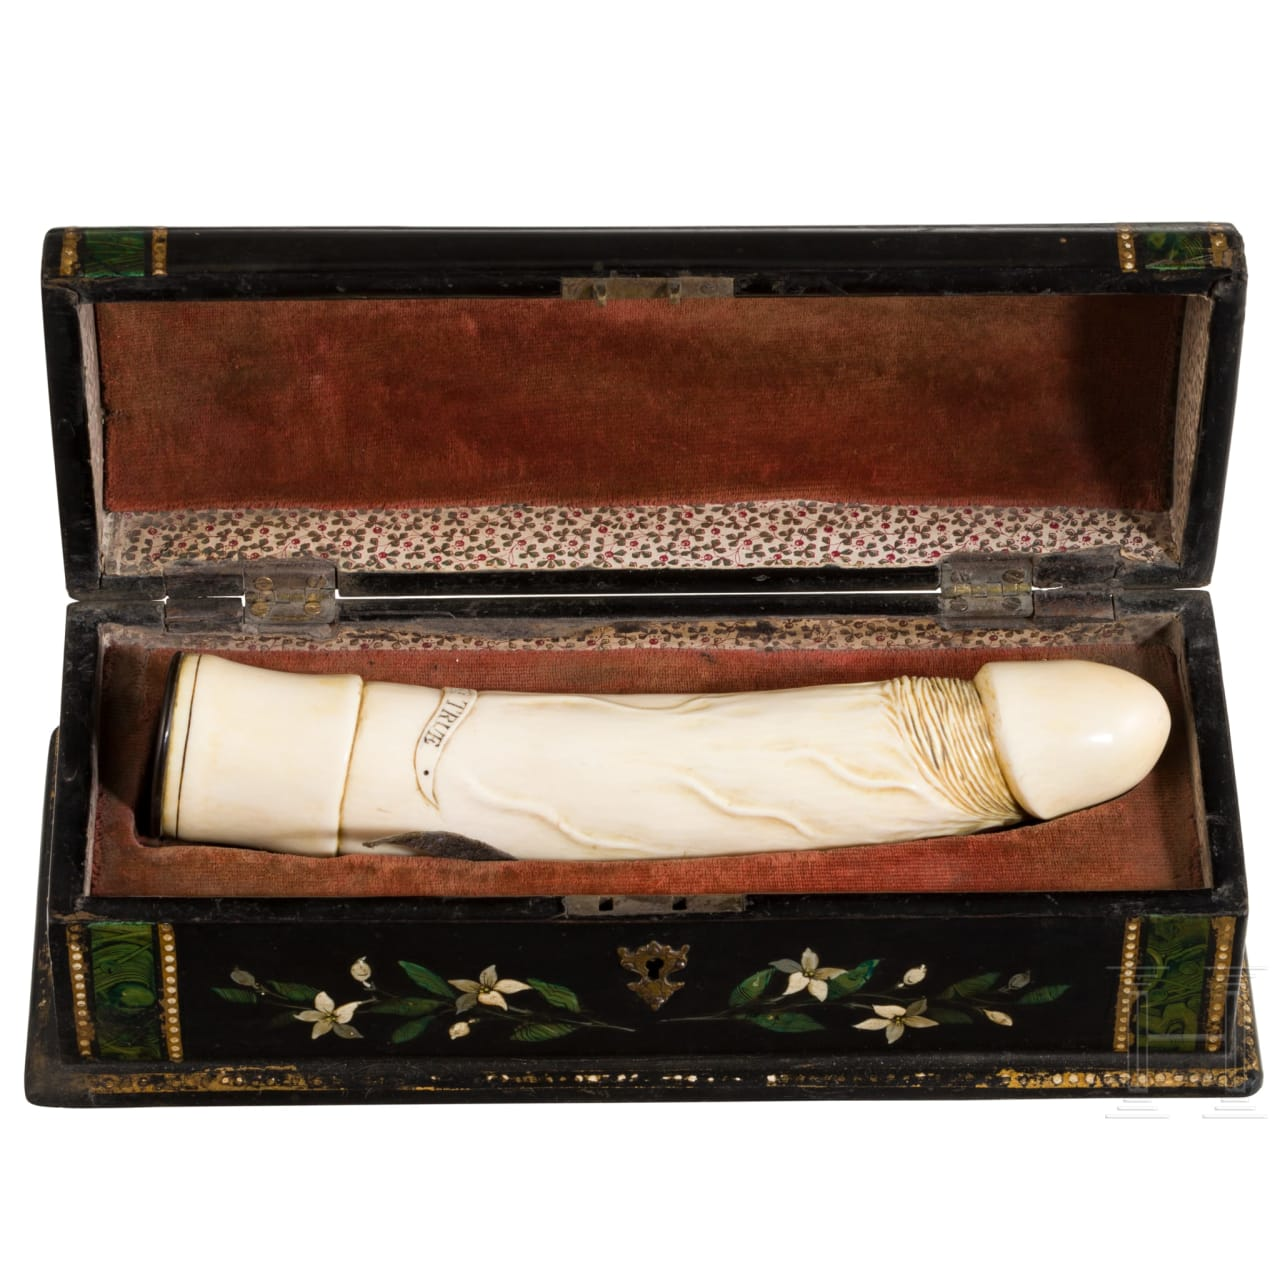 A finely carved English ivory phallus in a case, circa 1880